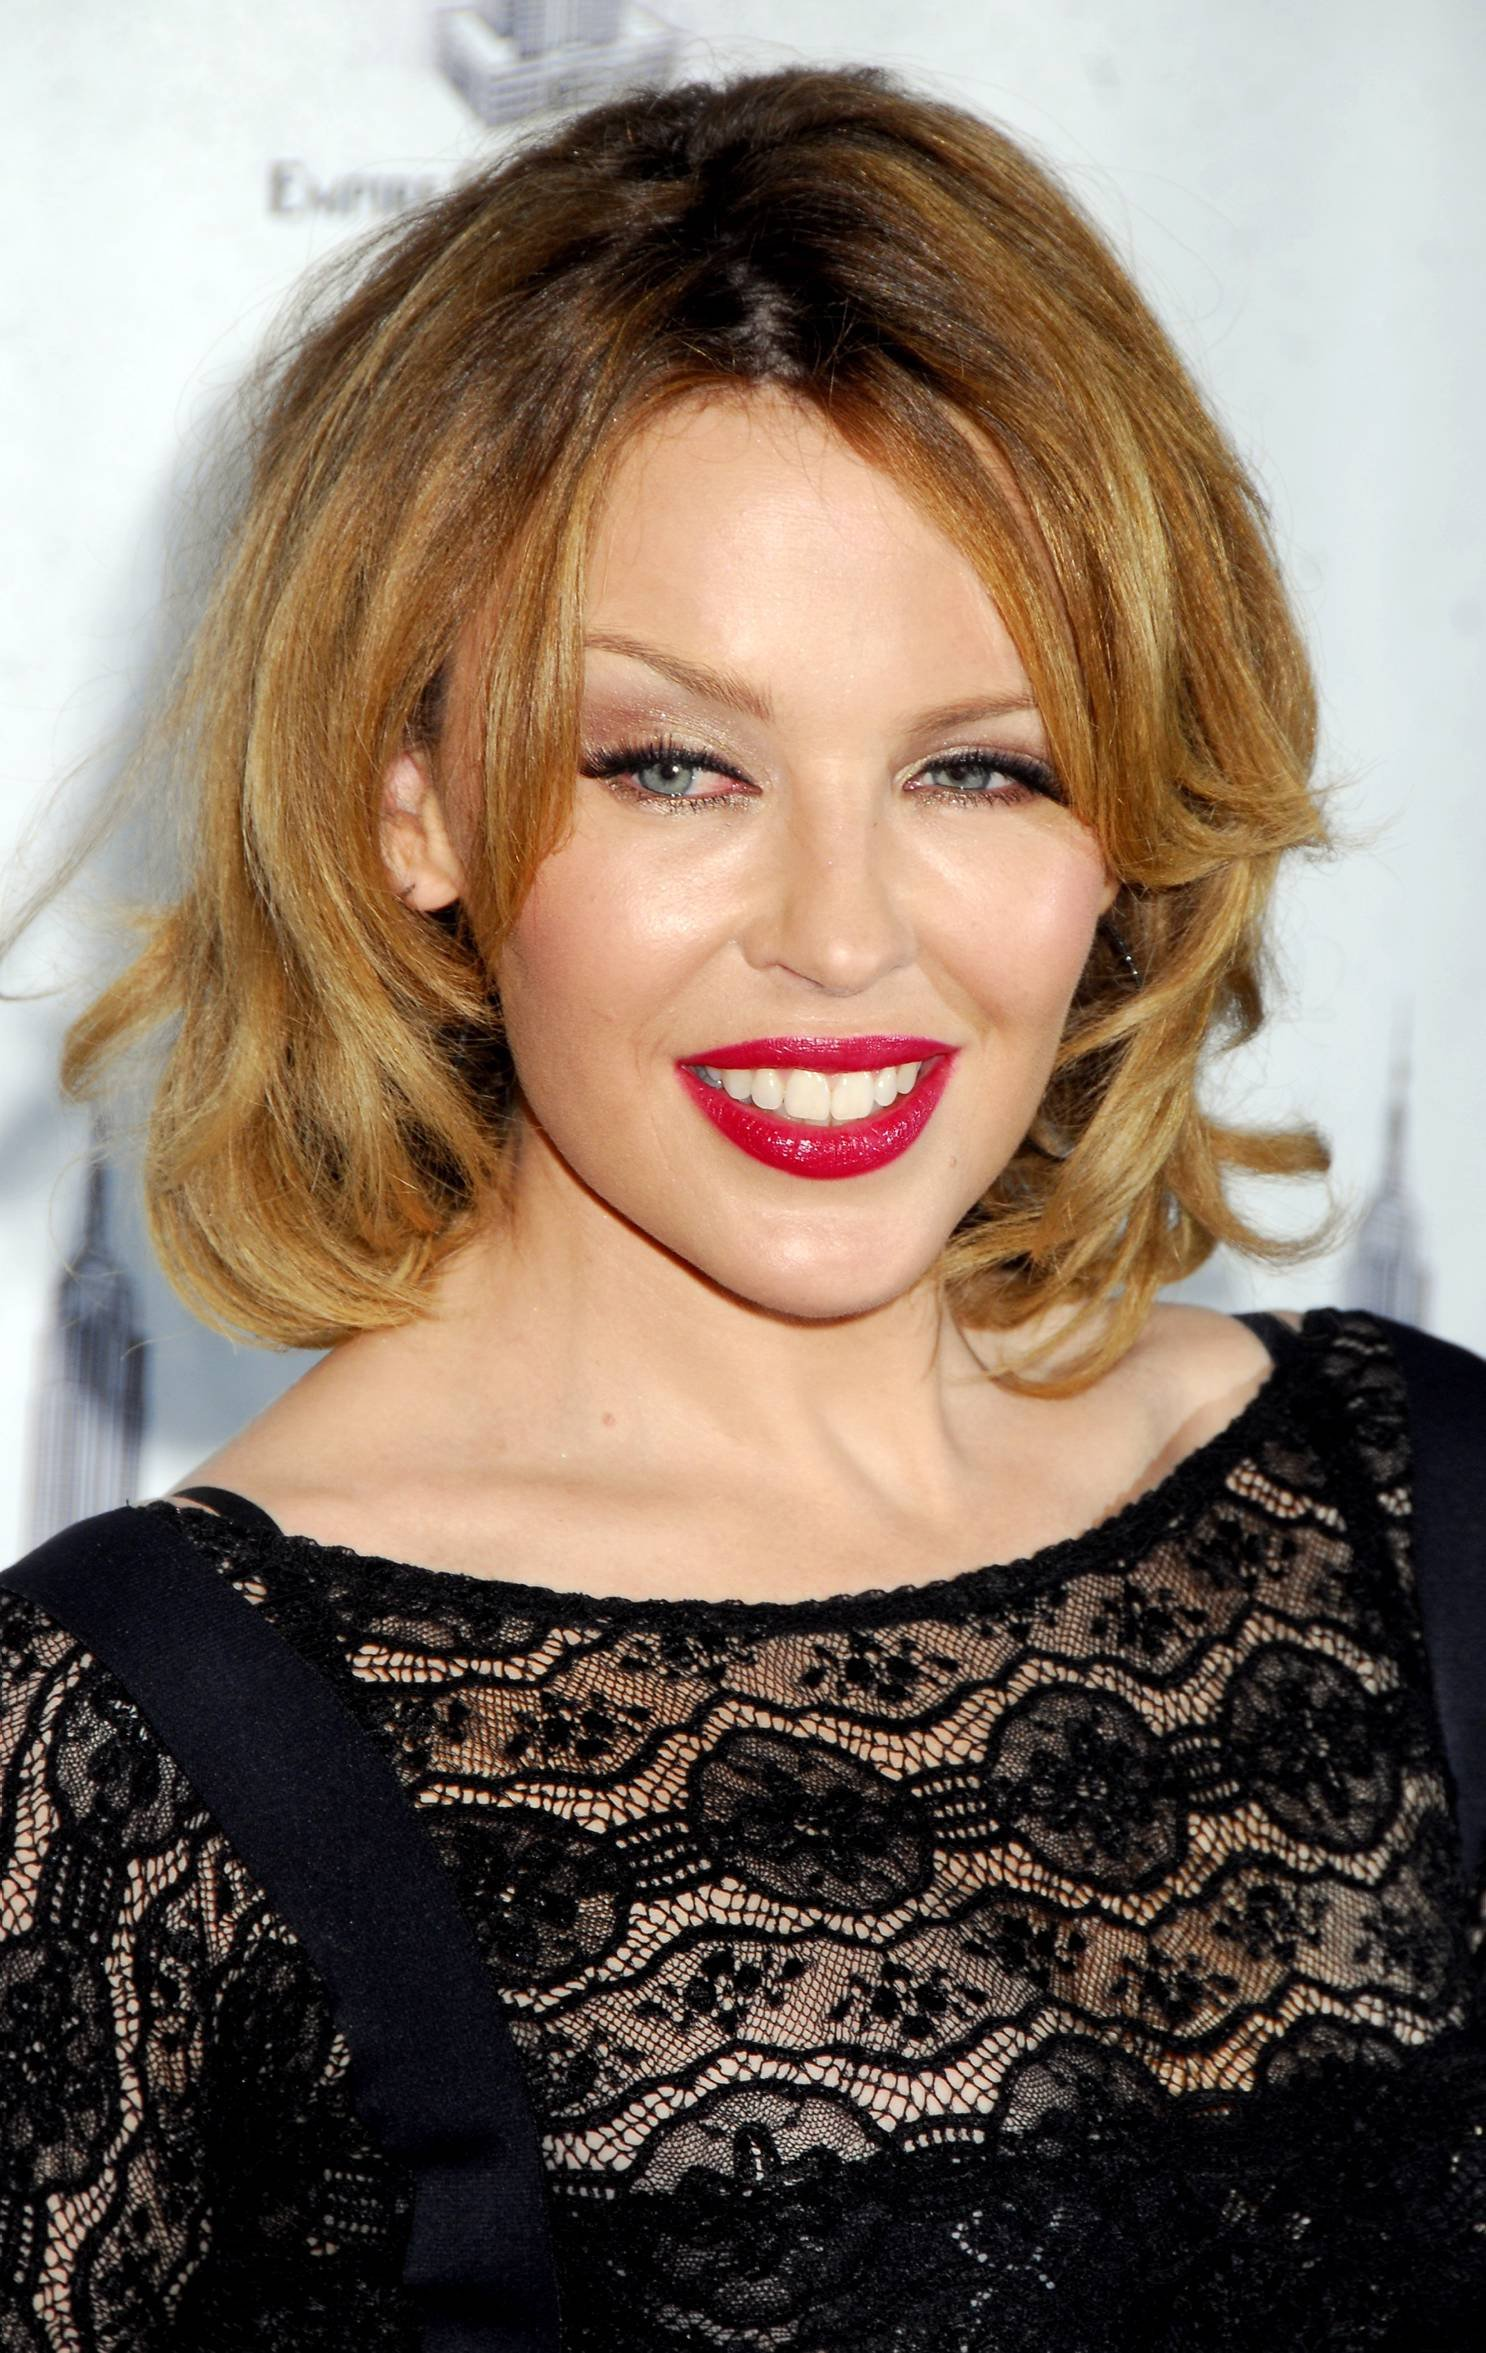 28914_Celebutopia-Kylie_Minogue_lights_The_Empire_State_Building-10_122_1132lo.jpg